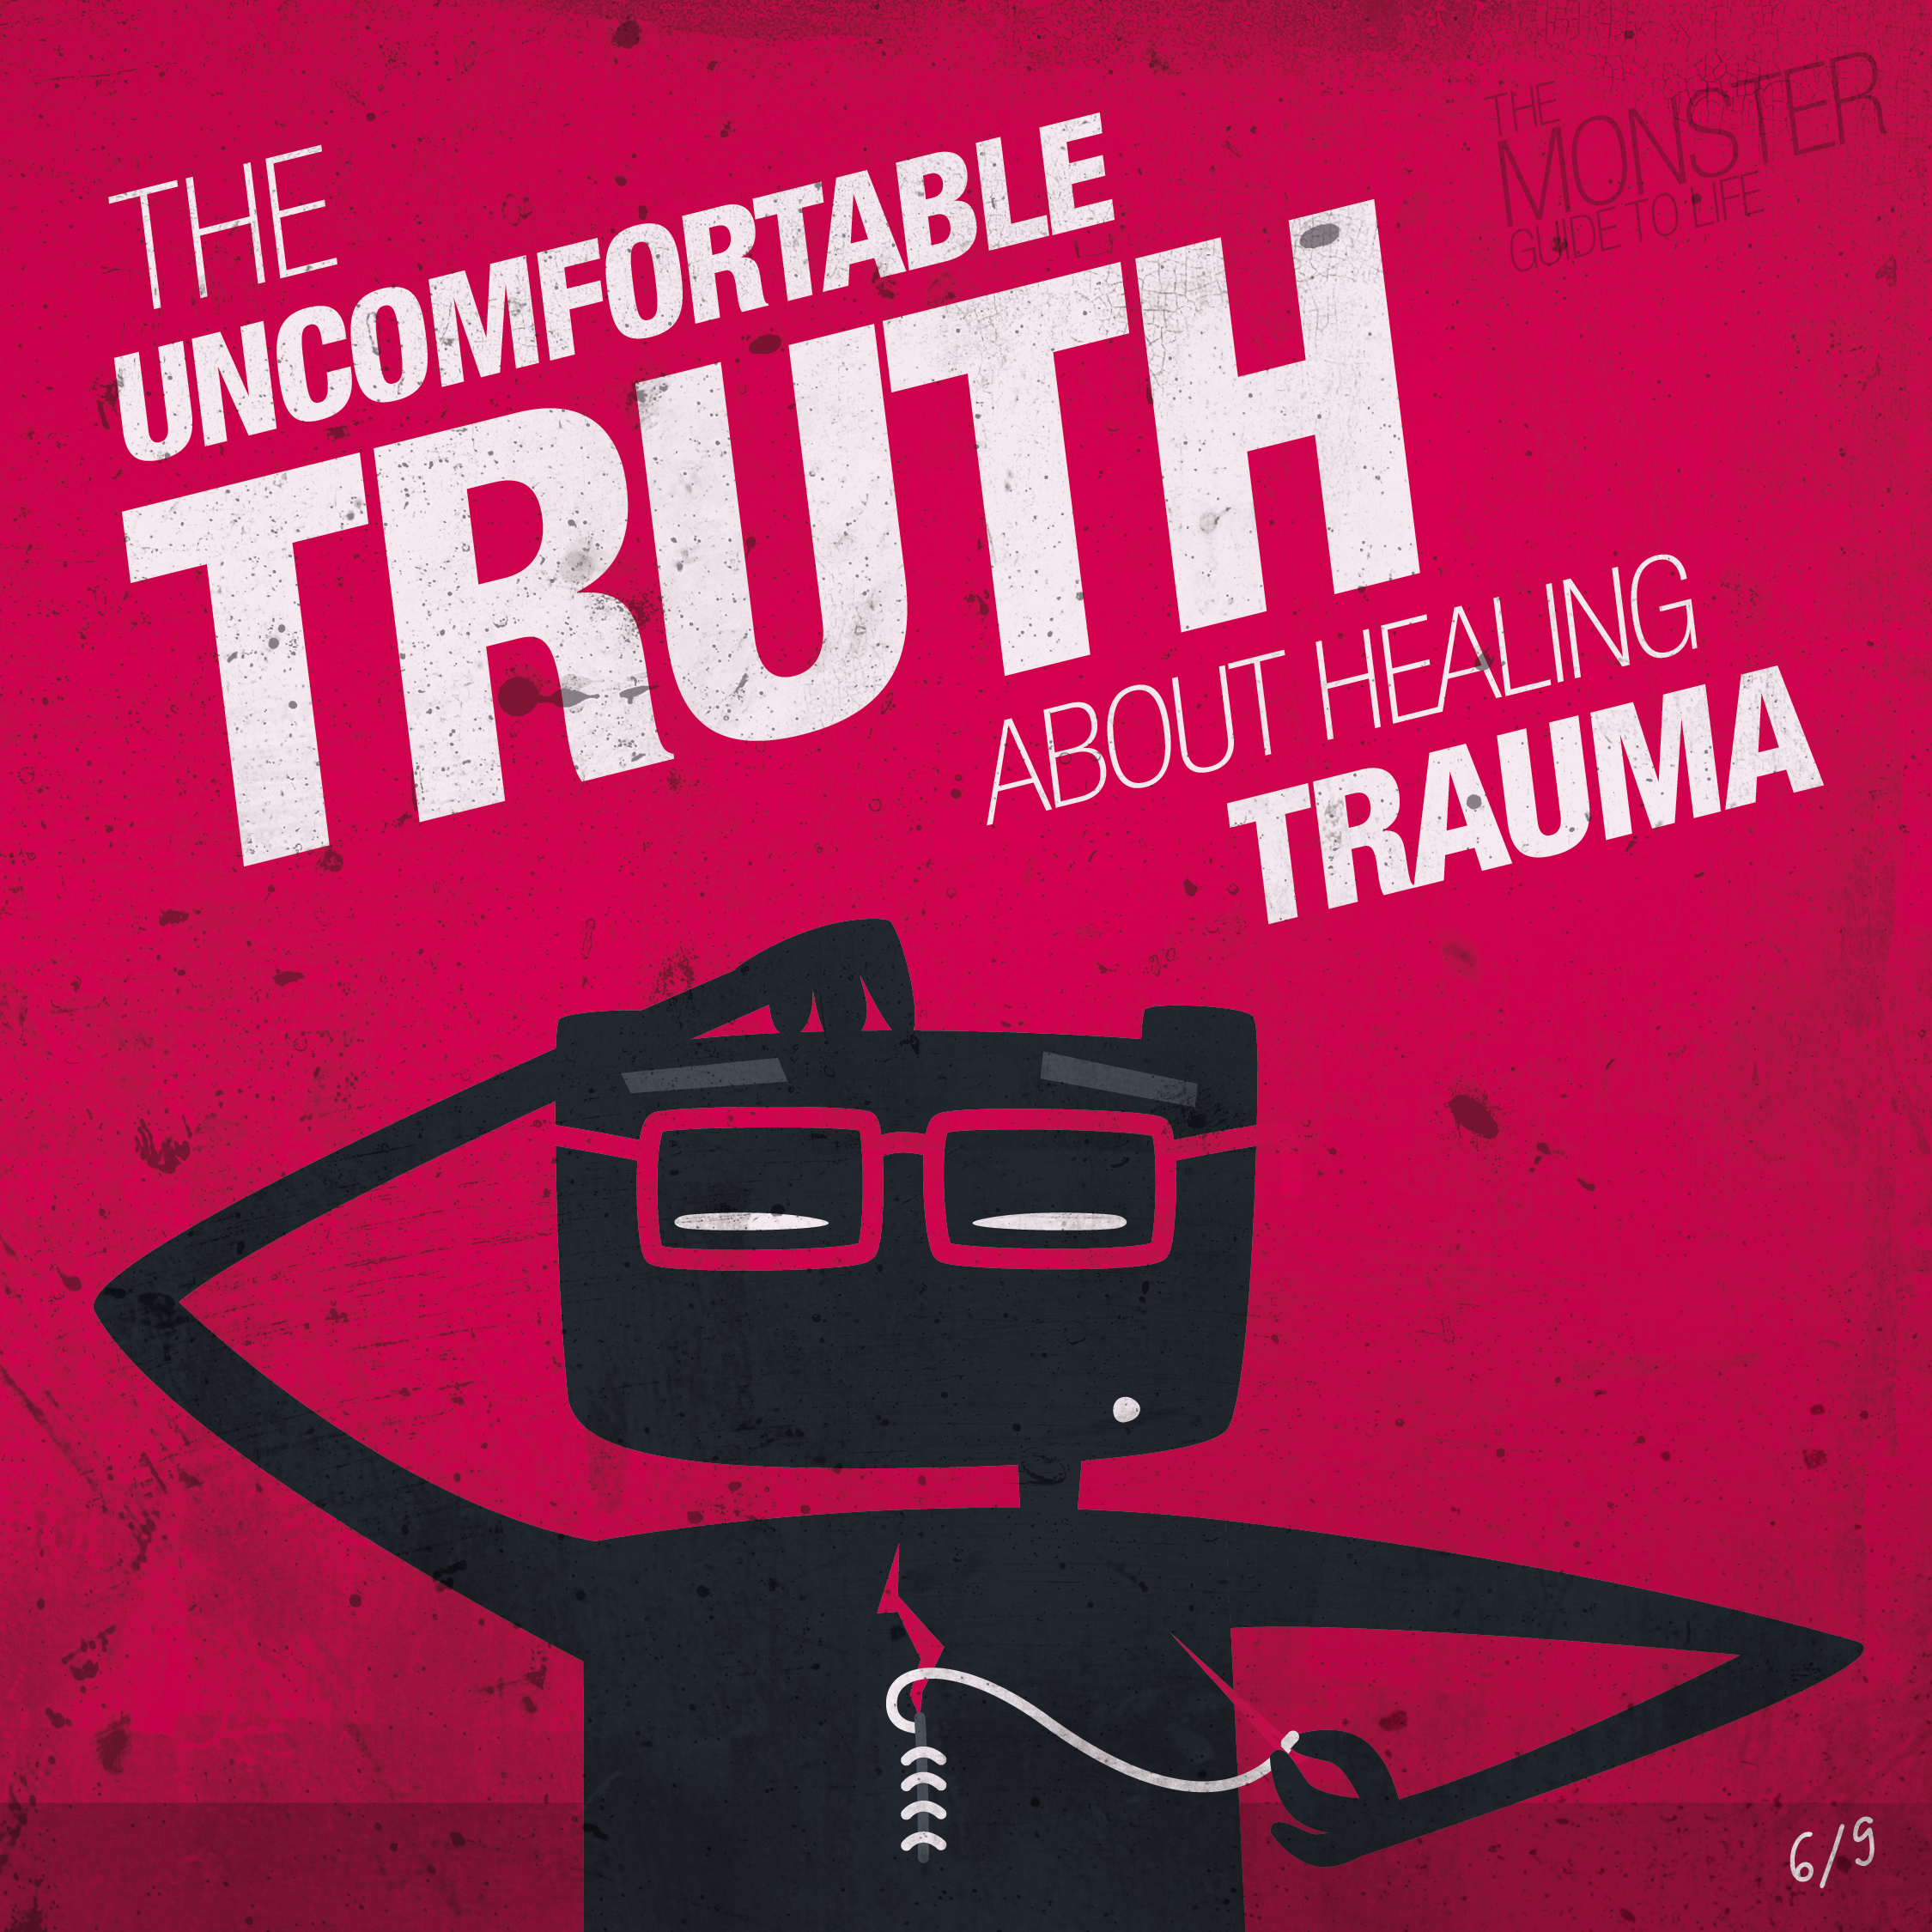 The uncomfortable truth about healing trauma